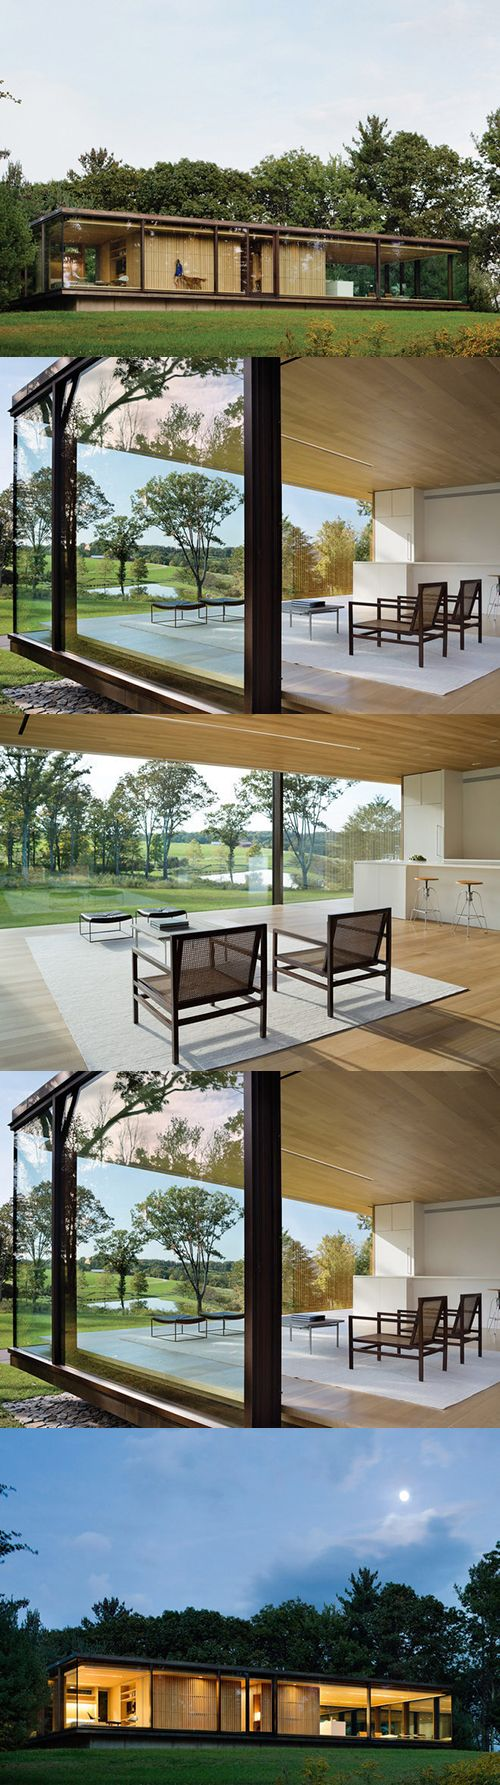 Prefab Glass House Makes Picture-Perfect Rural Retreat ...